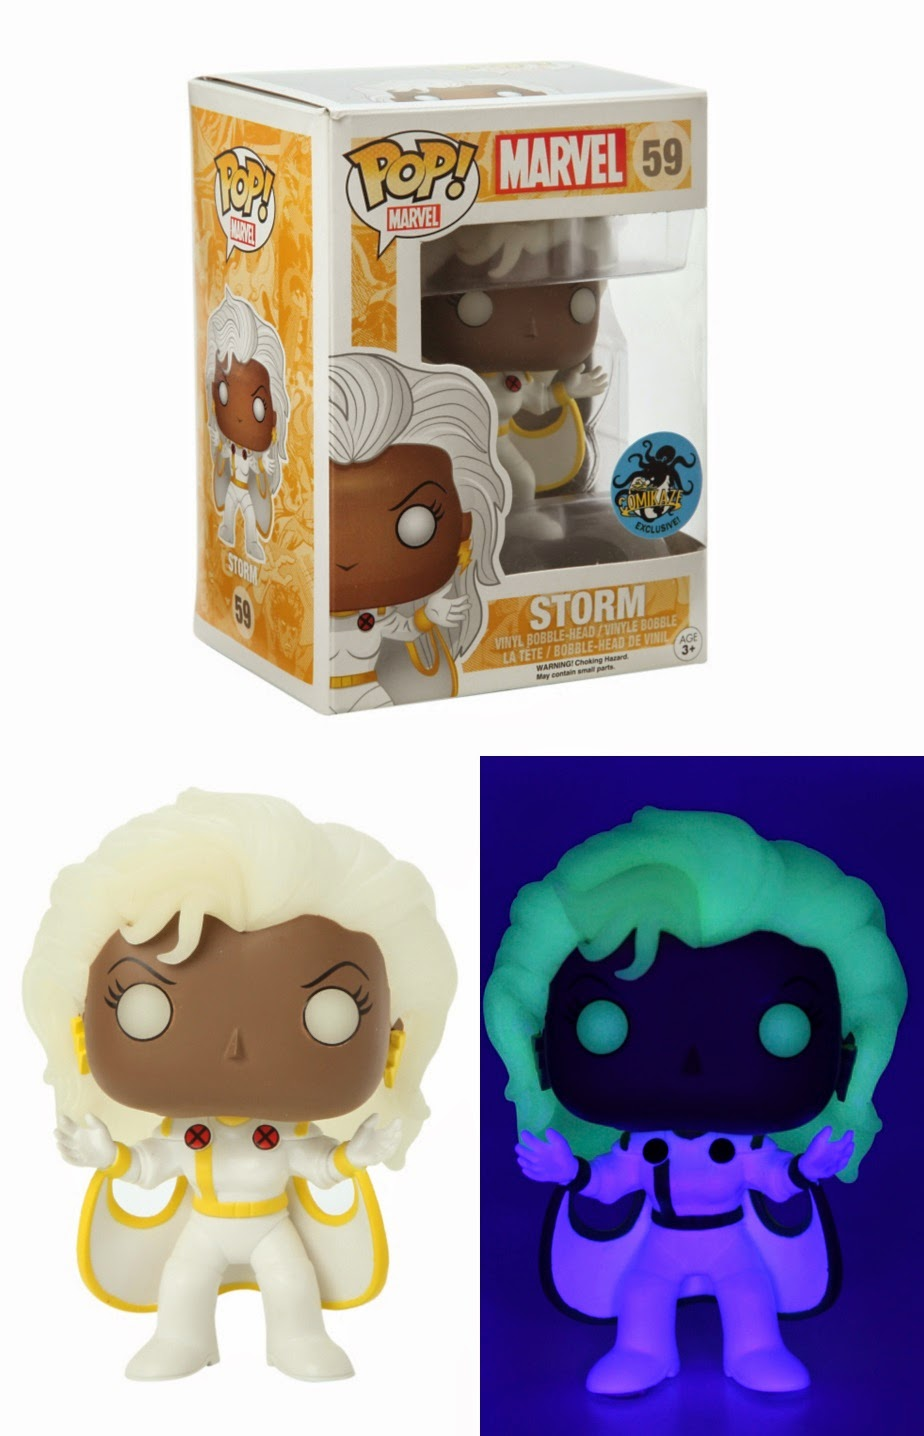 Hot Topic Exclusive '90s X-Men Glow in the Dark Storm Pop! Marvel Vinyl Figure by Funko